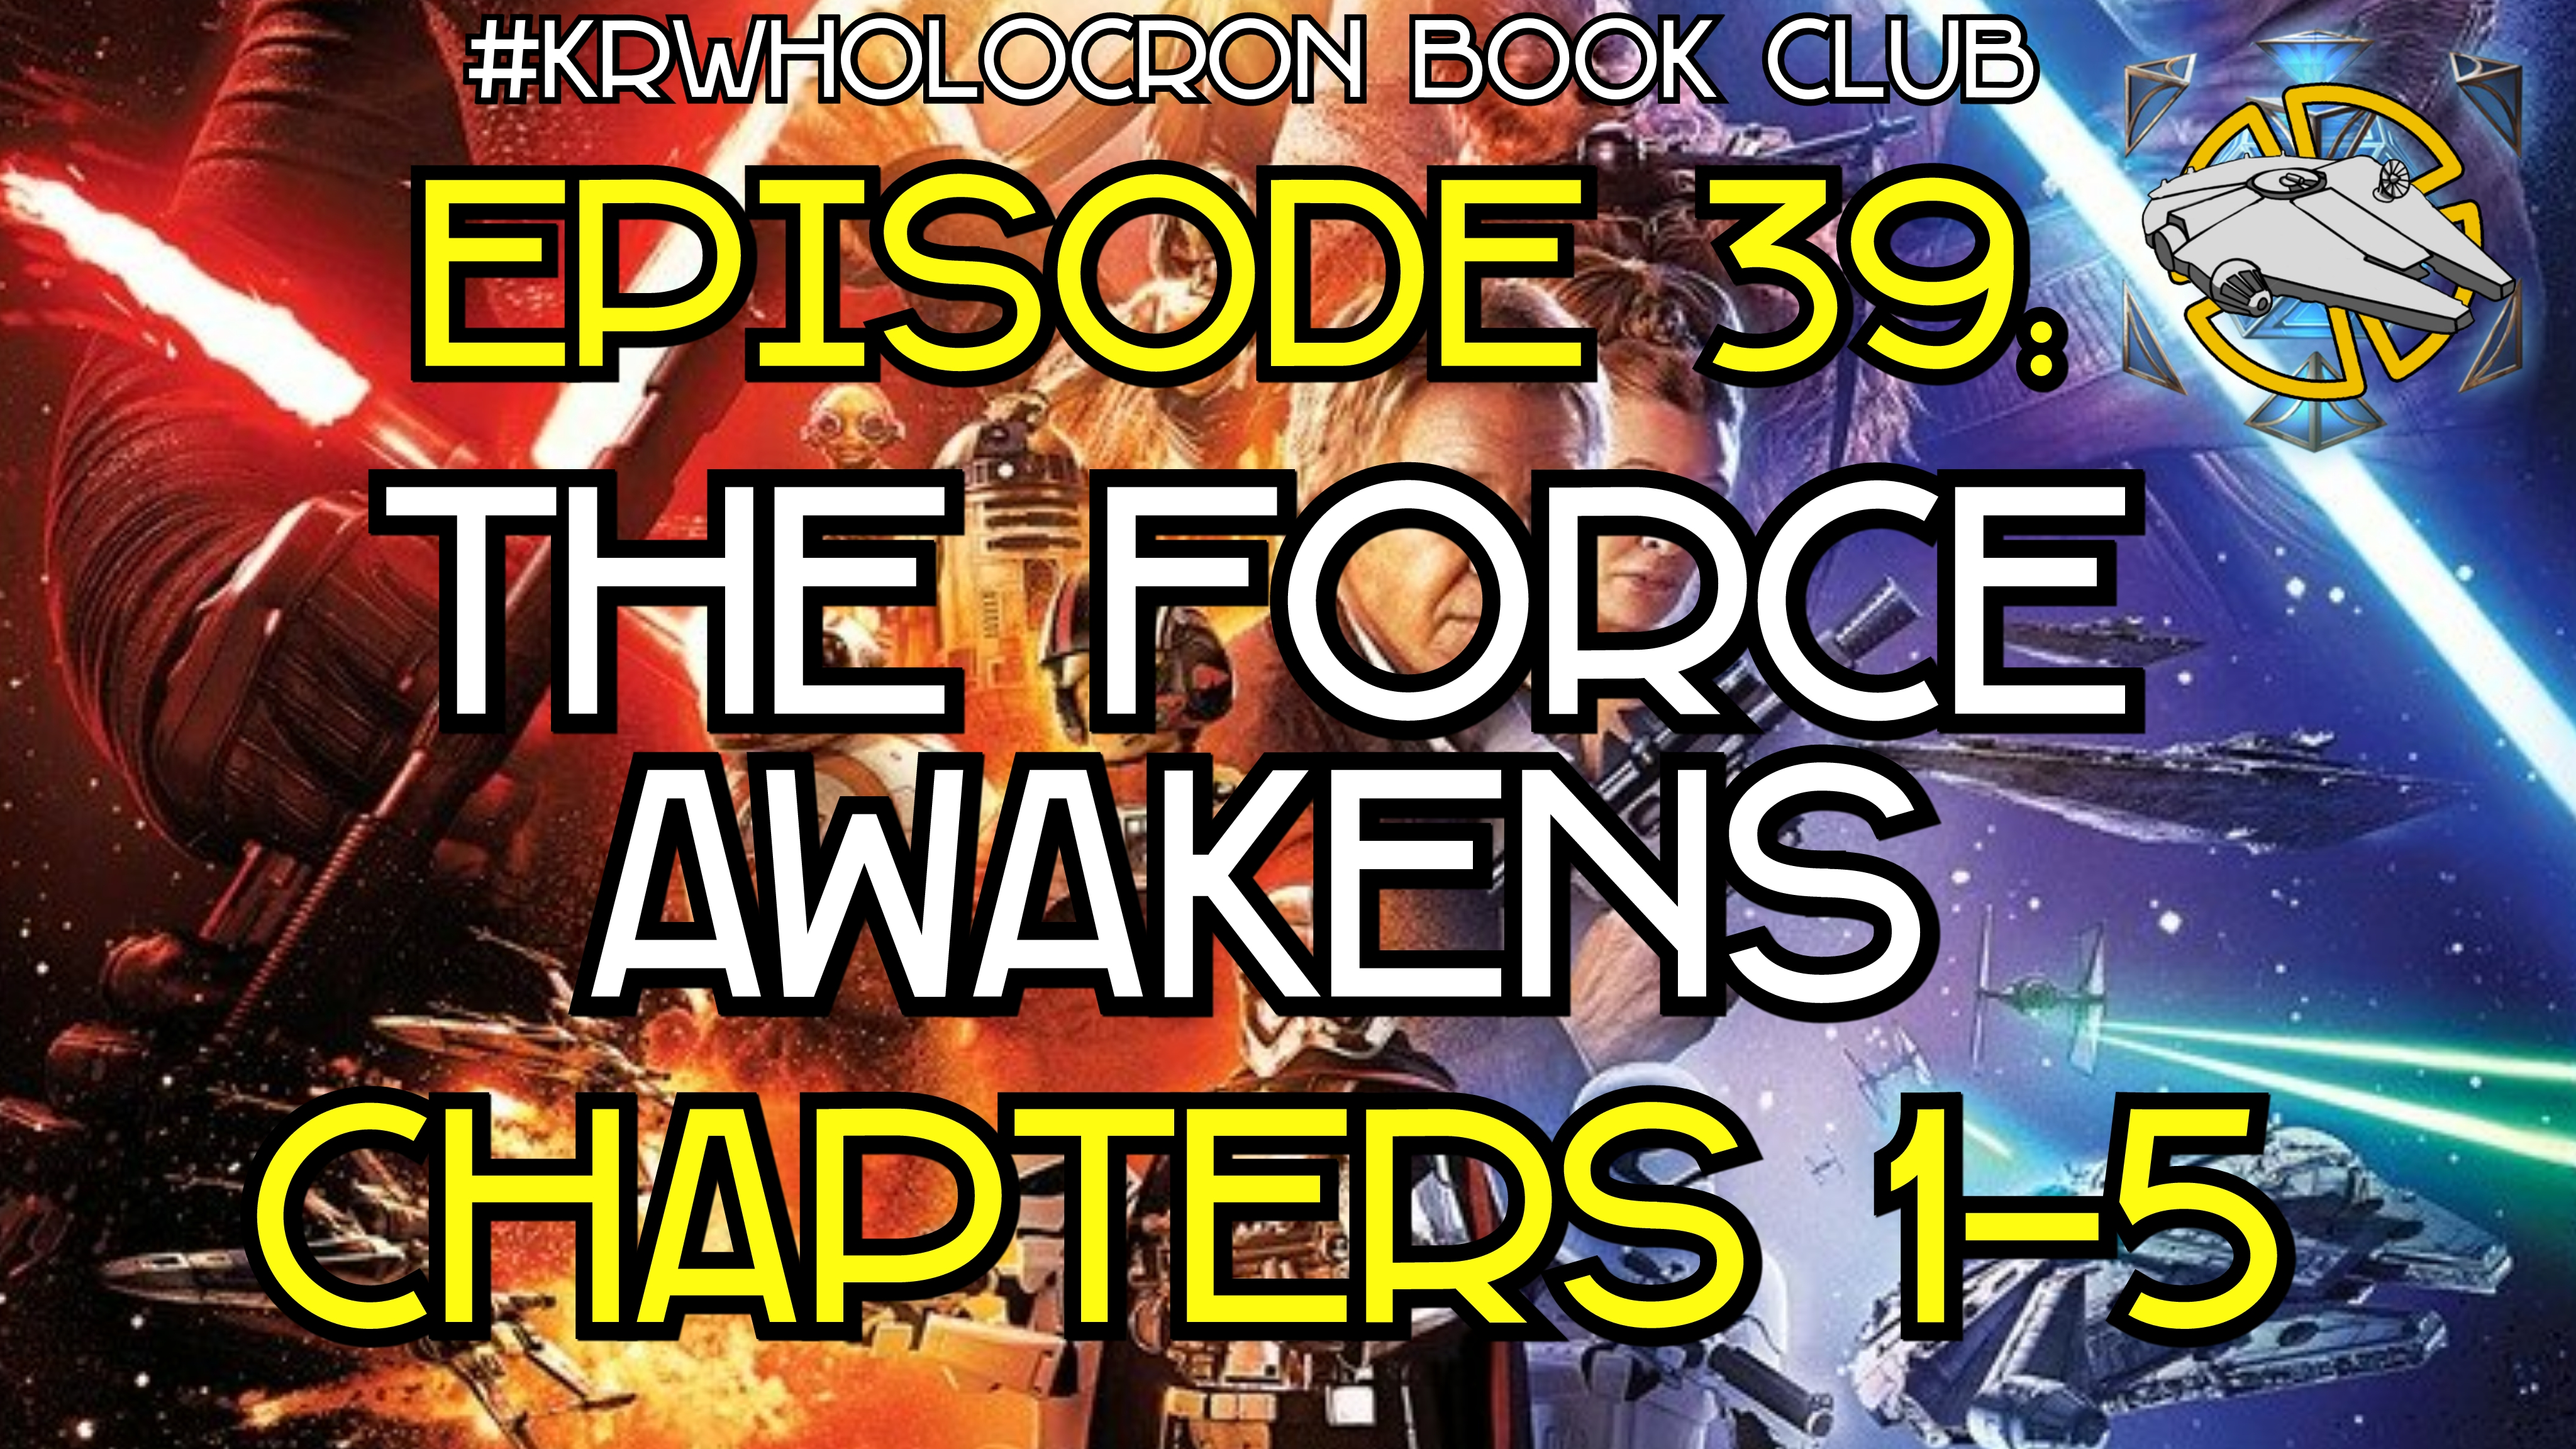 Episode 39: The Force Awakens - Chapters 1-5